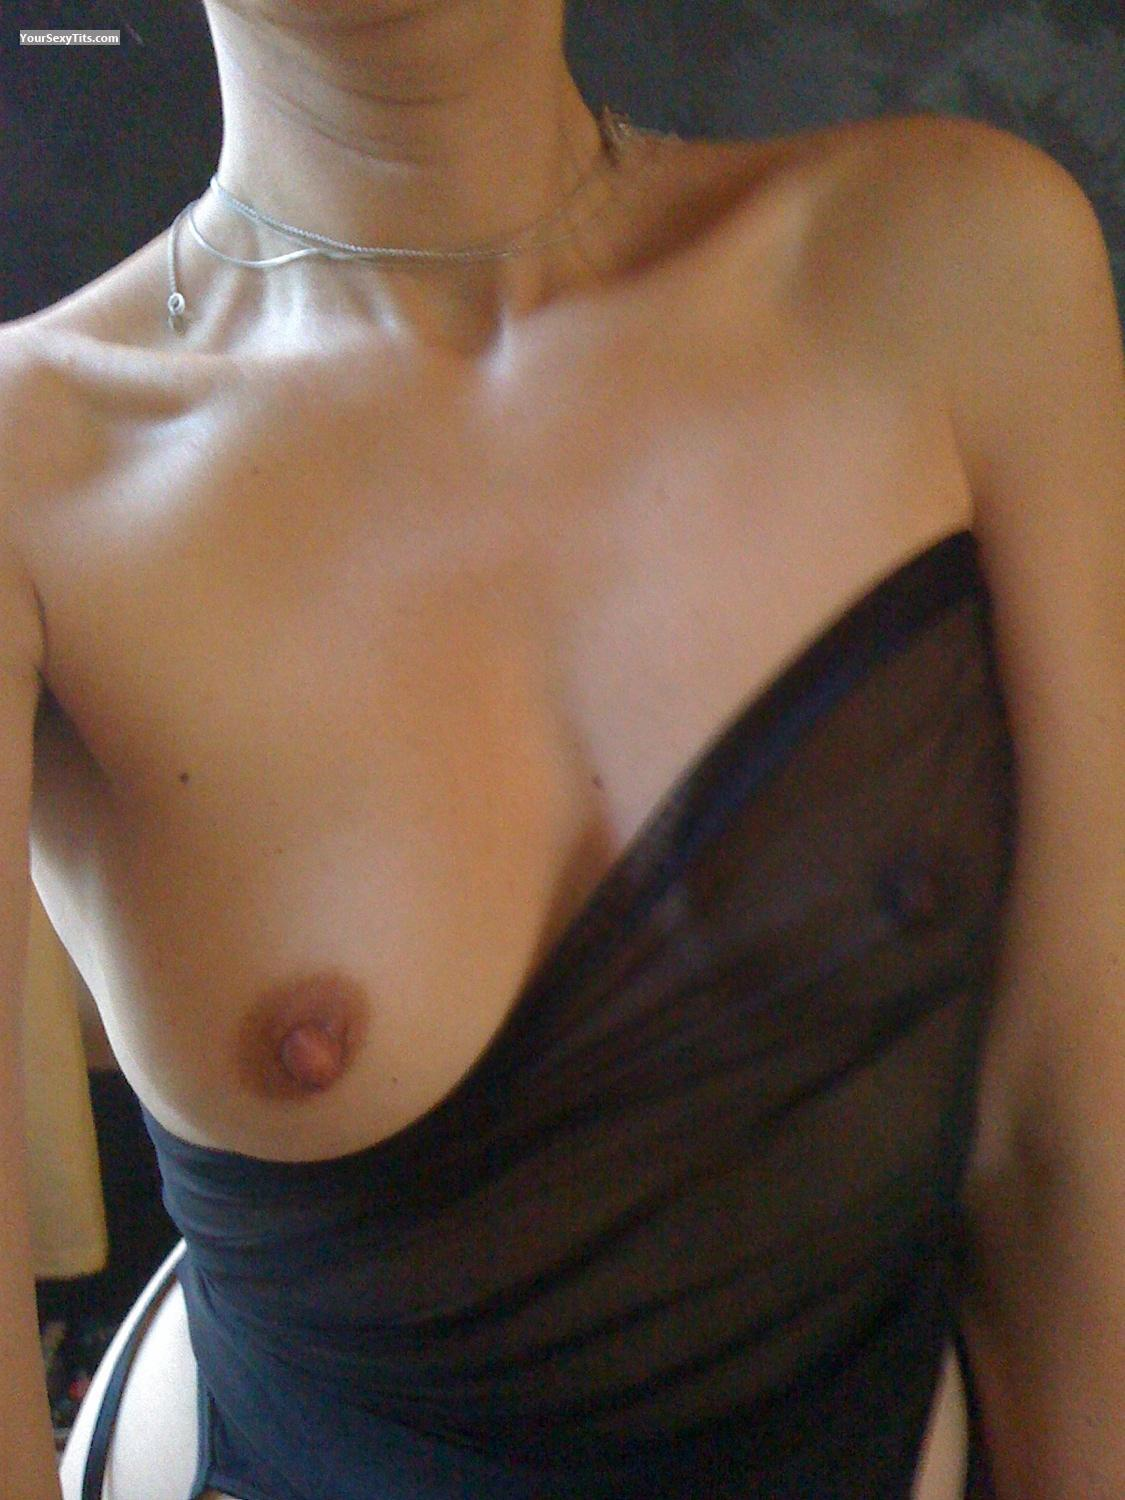 My Small Tits Selfie by Jazzman